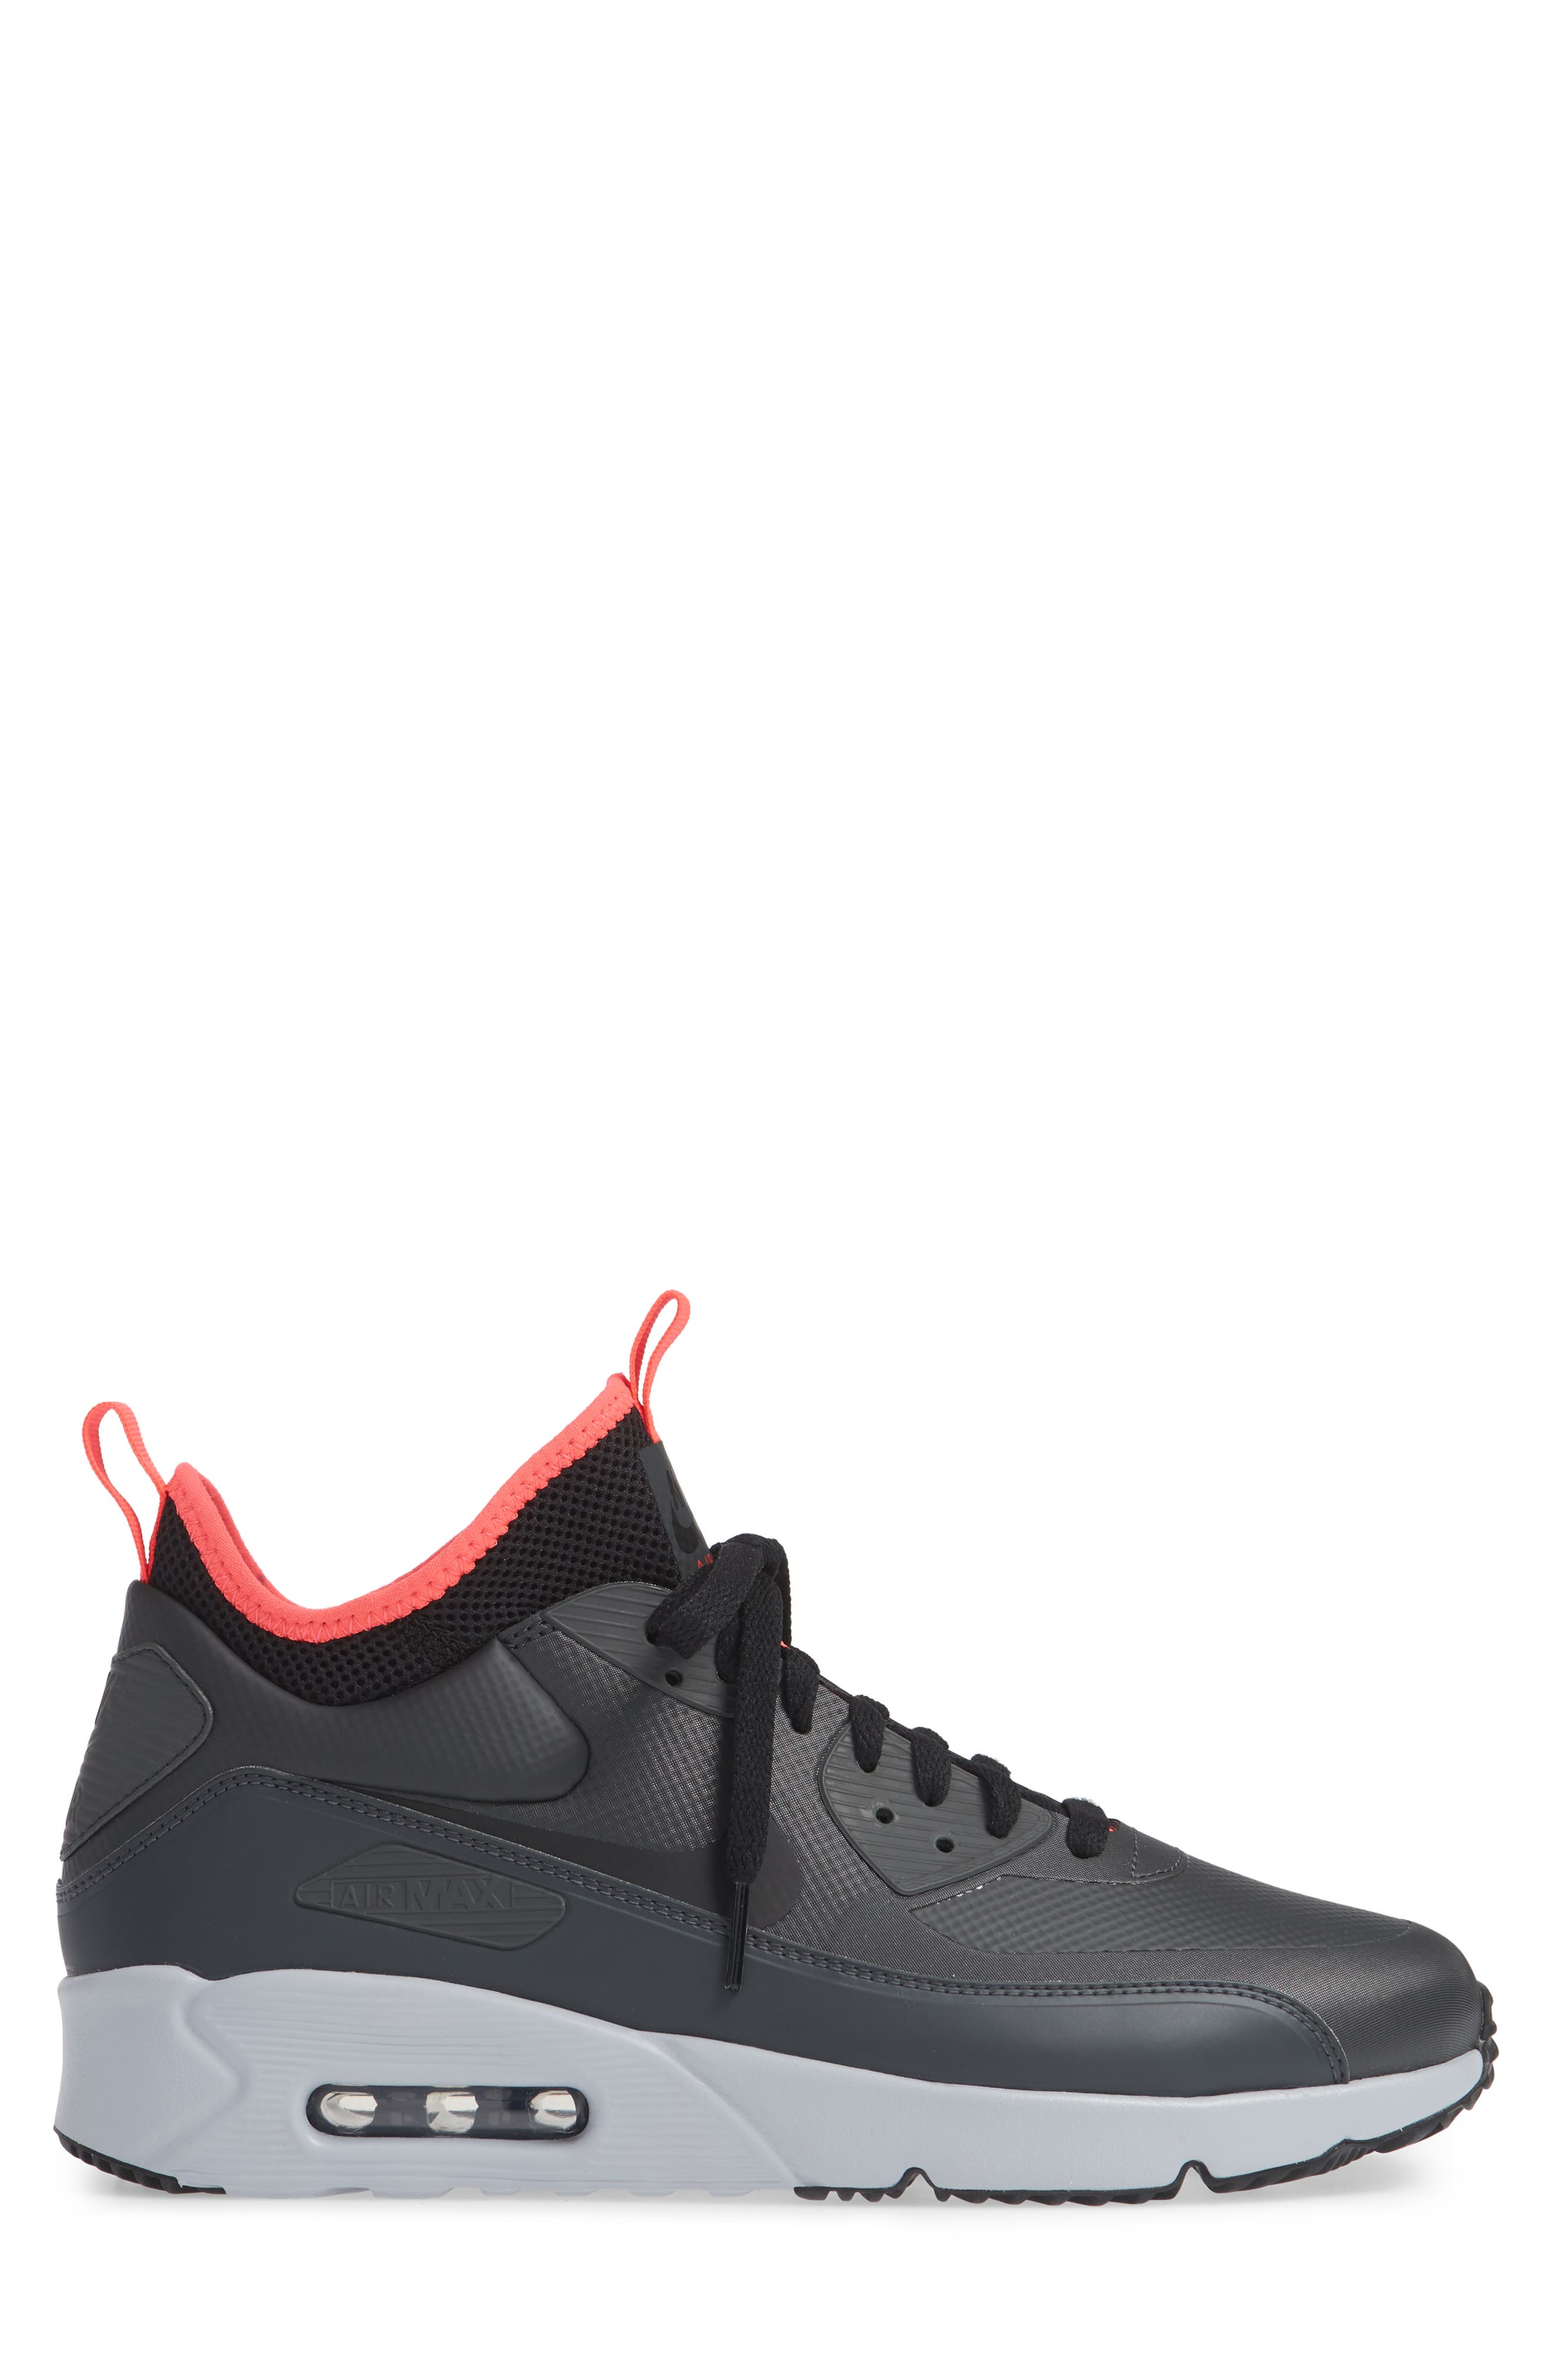 Air Max 90 Ultra Mid Winter Sneaker,                             Alternate thumbnail 3, color,                             ANTHRACITE/ BLACK/ SOLAR RED